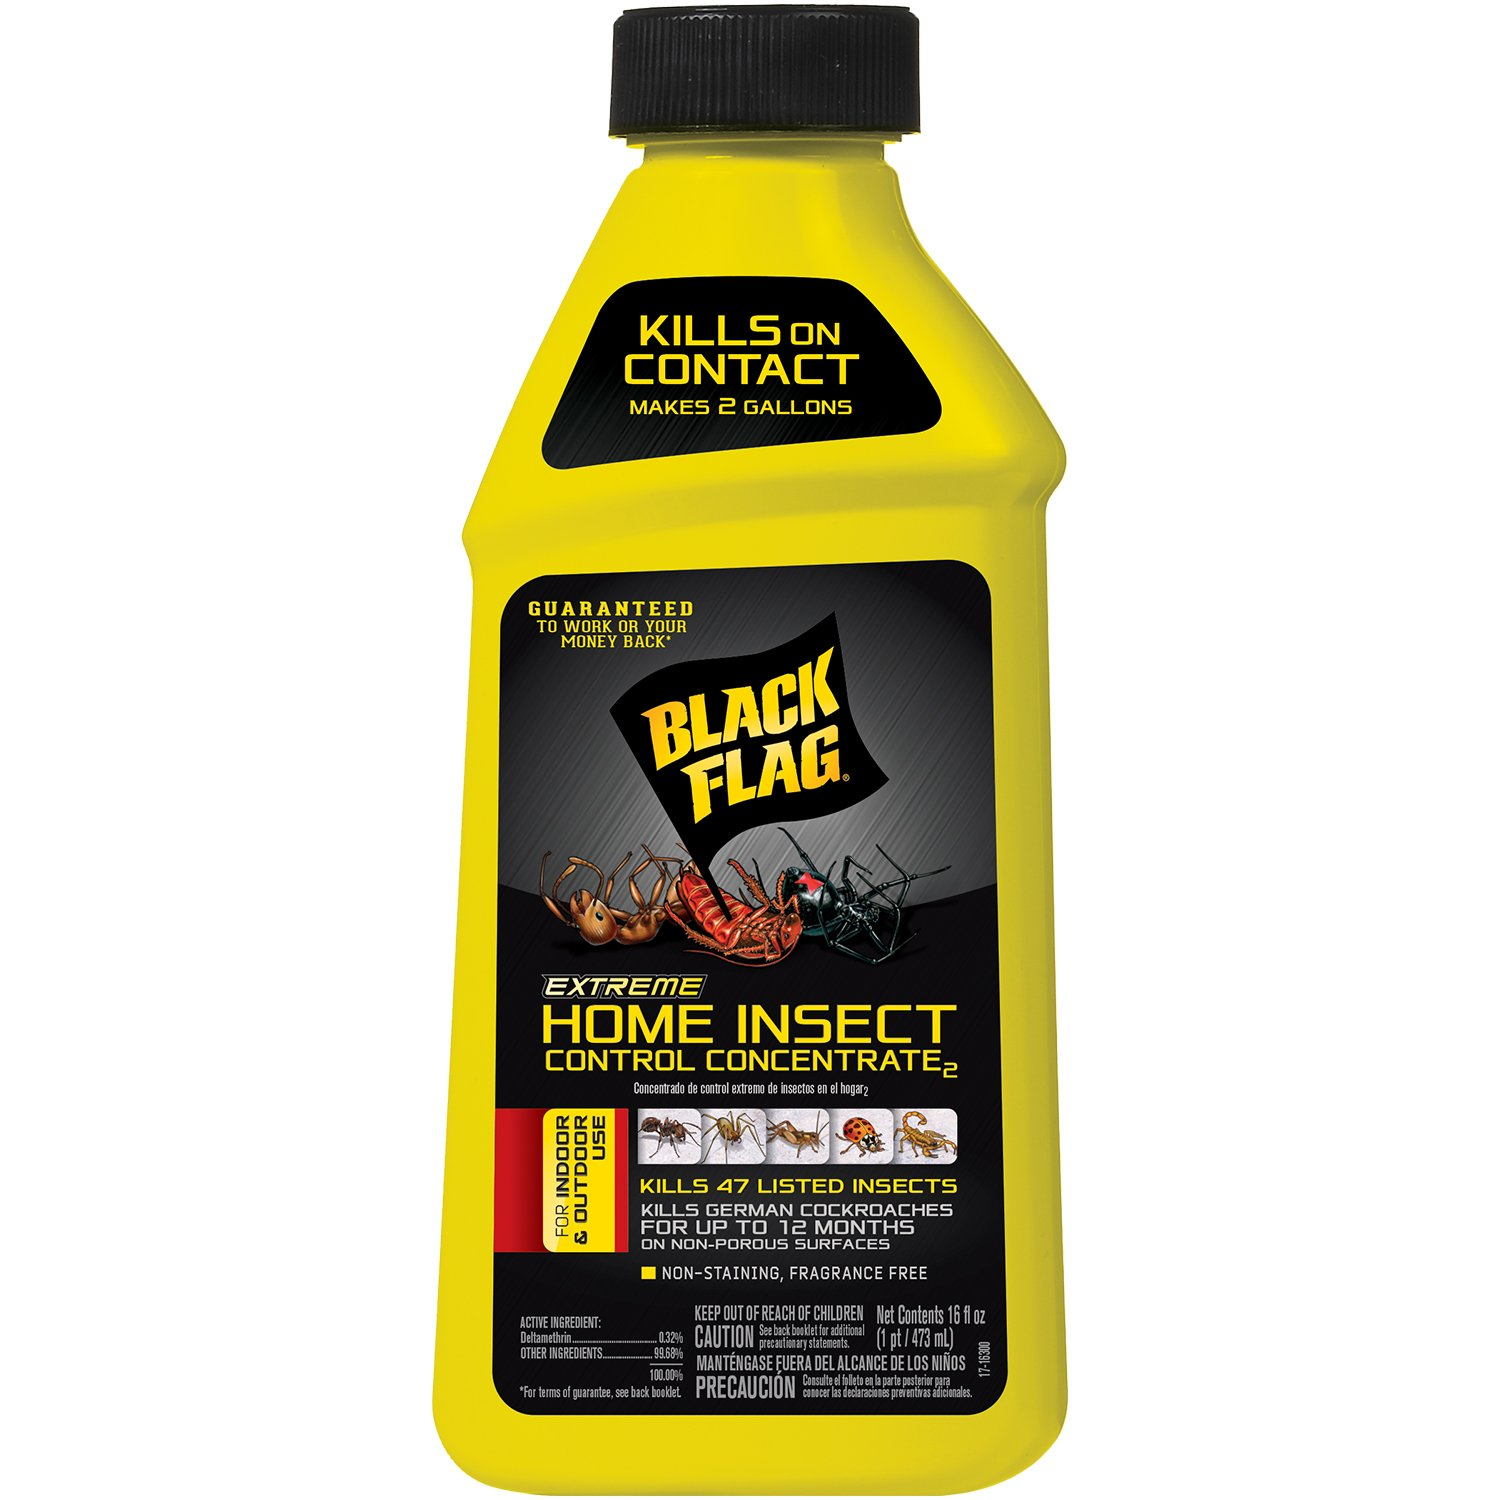 Black Flag Extreme Home Insect Control Concentrate 16 Ounce, for Indoor and Outdoor Use, Makes 2 Gallons